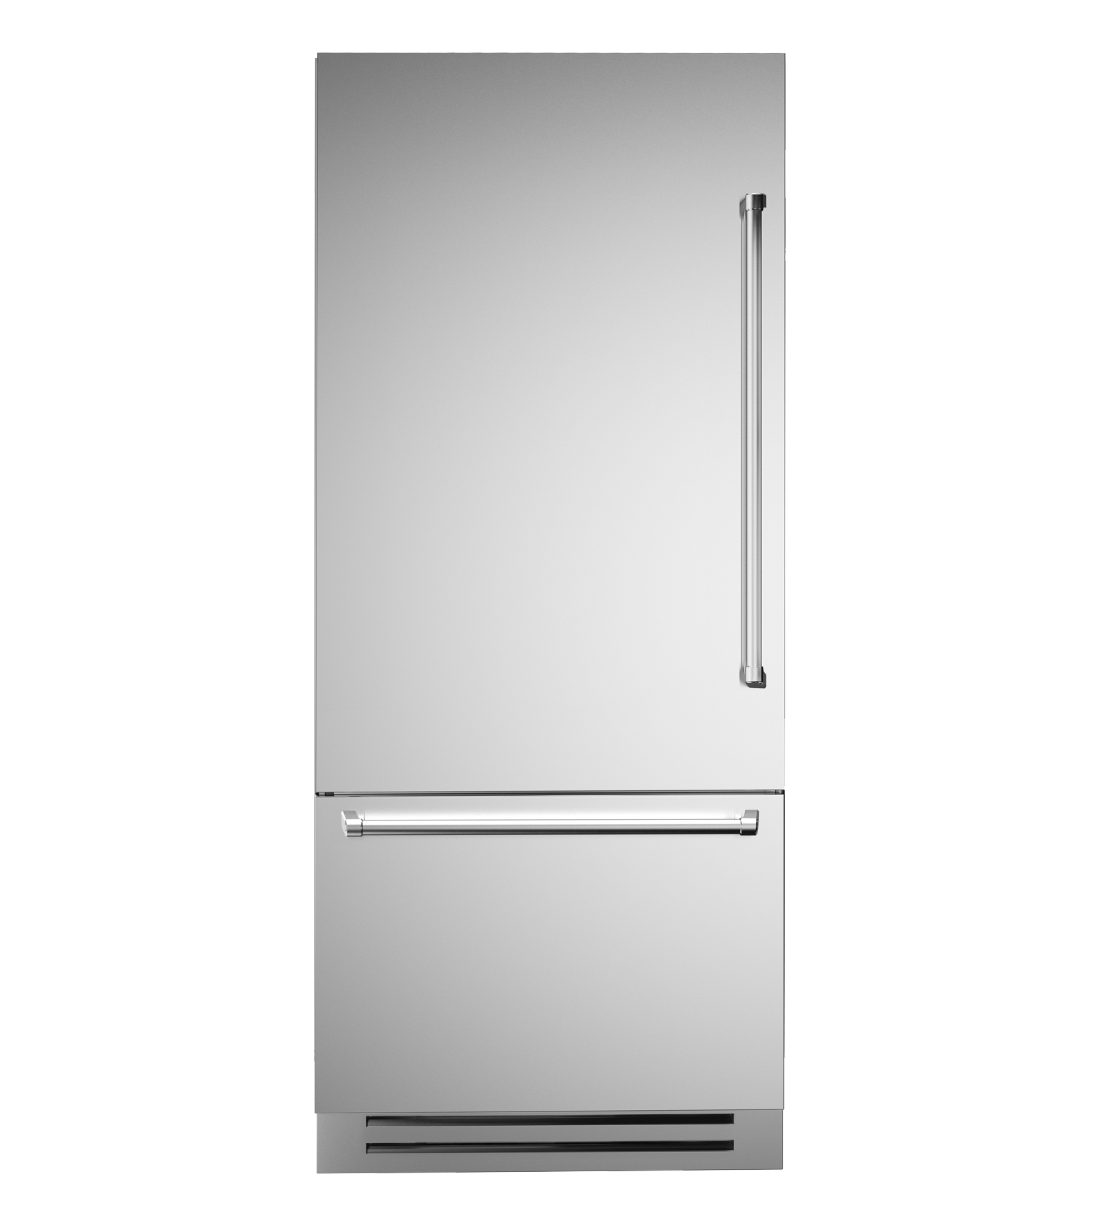 Bertazzoni Fridge 36inch in Stainless Steel color showcased by Corbeil Electro Store